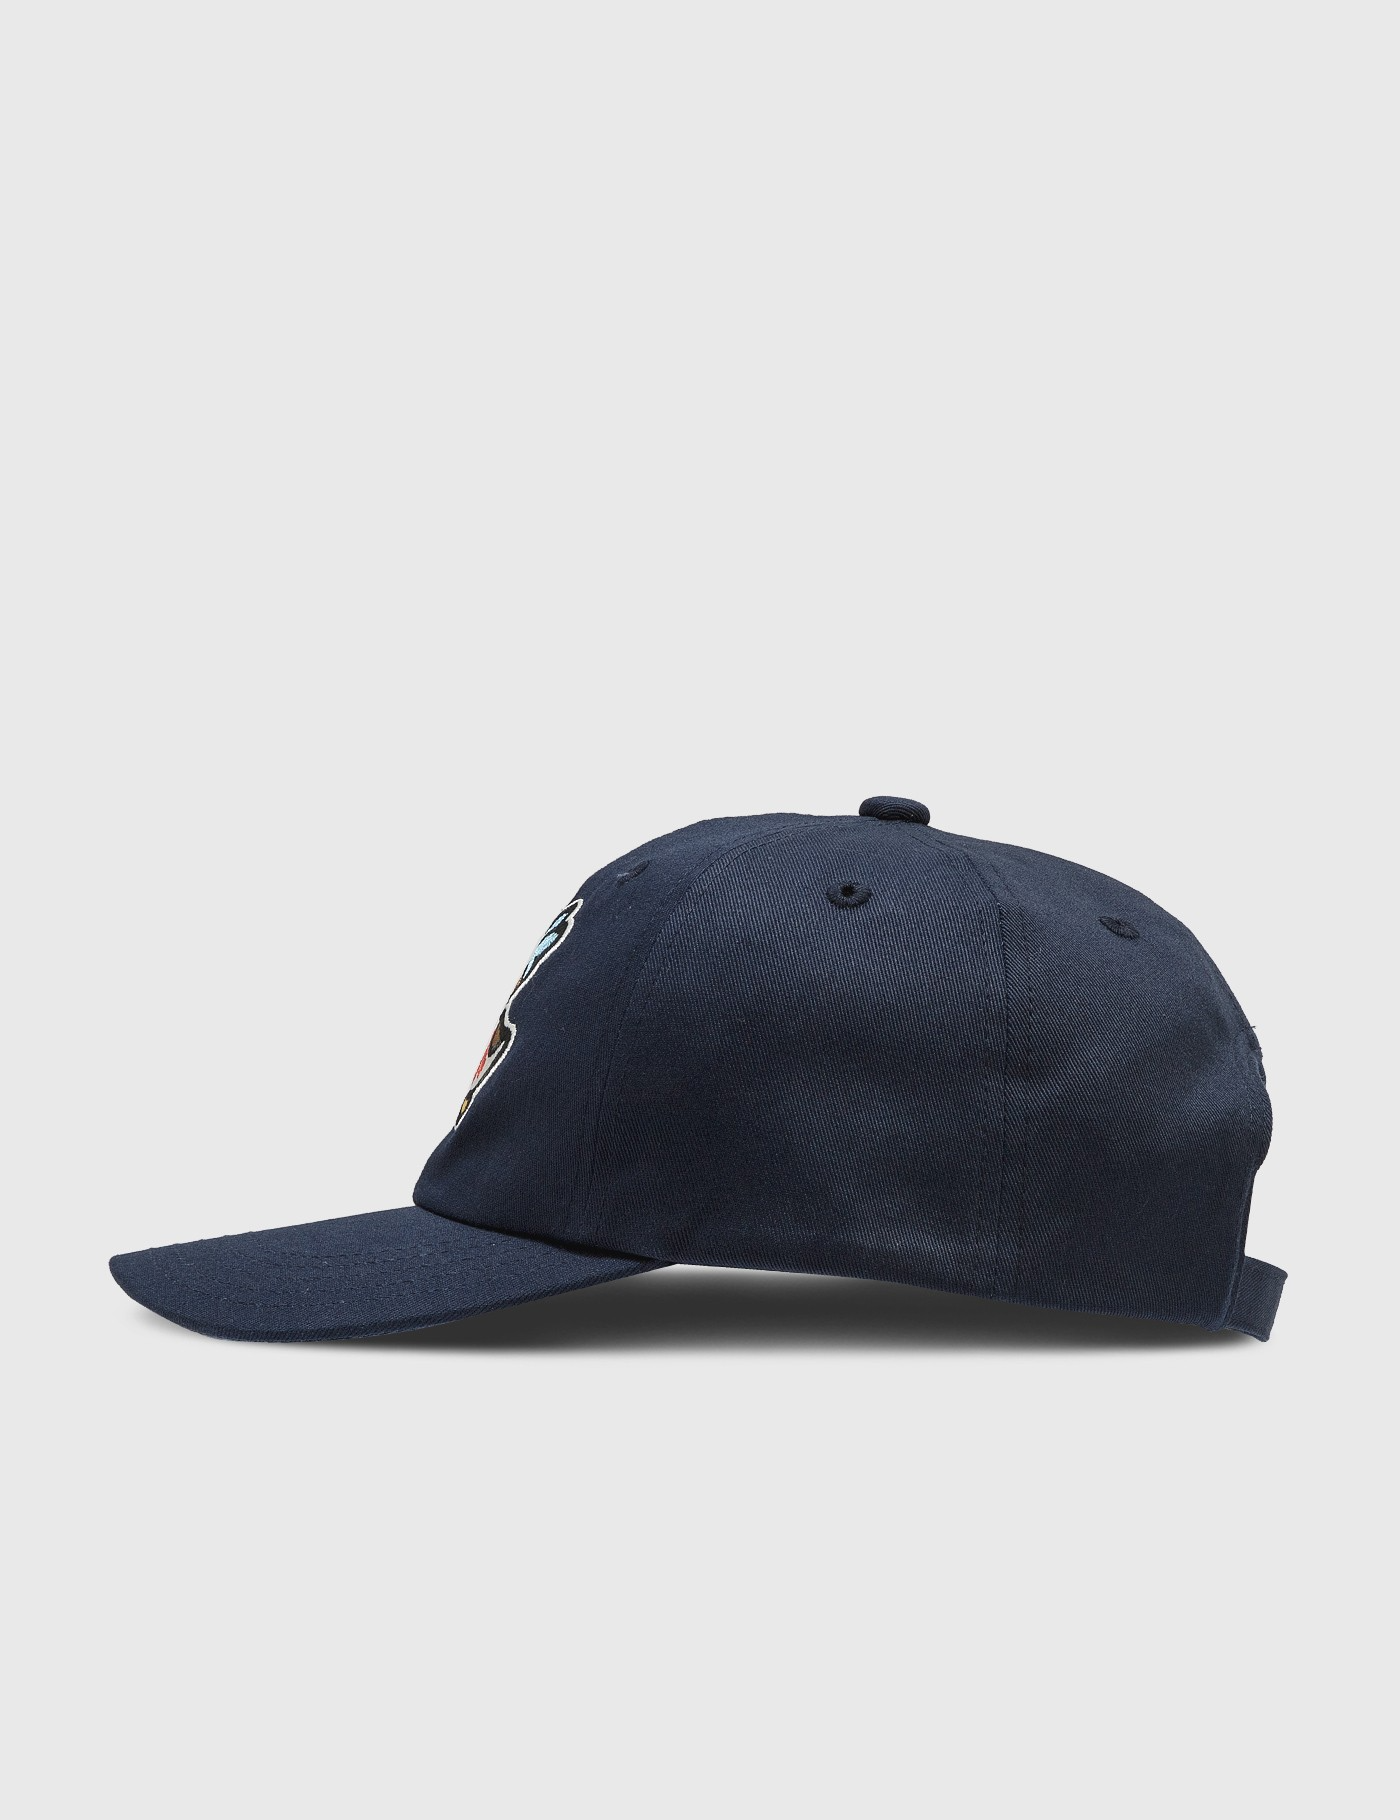 Mũ Human Made 6 Panel Duck Twill Cap HM21GD007